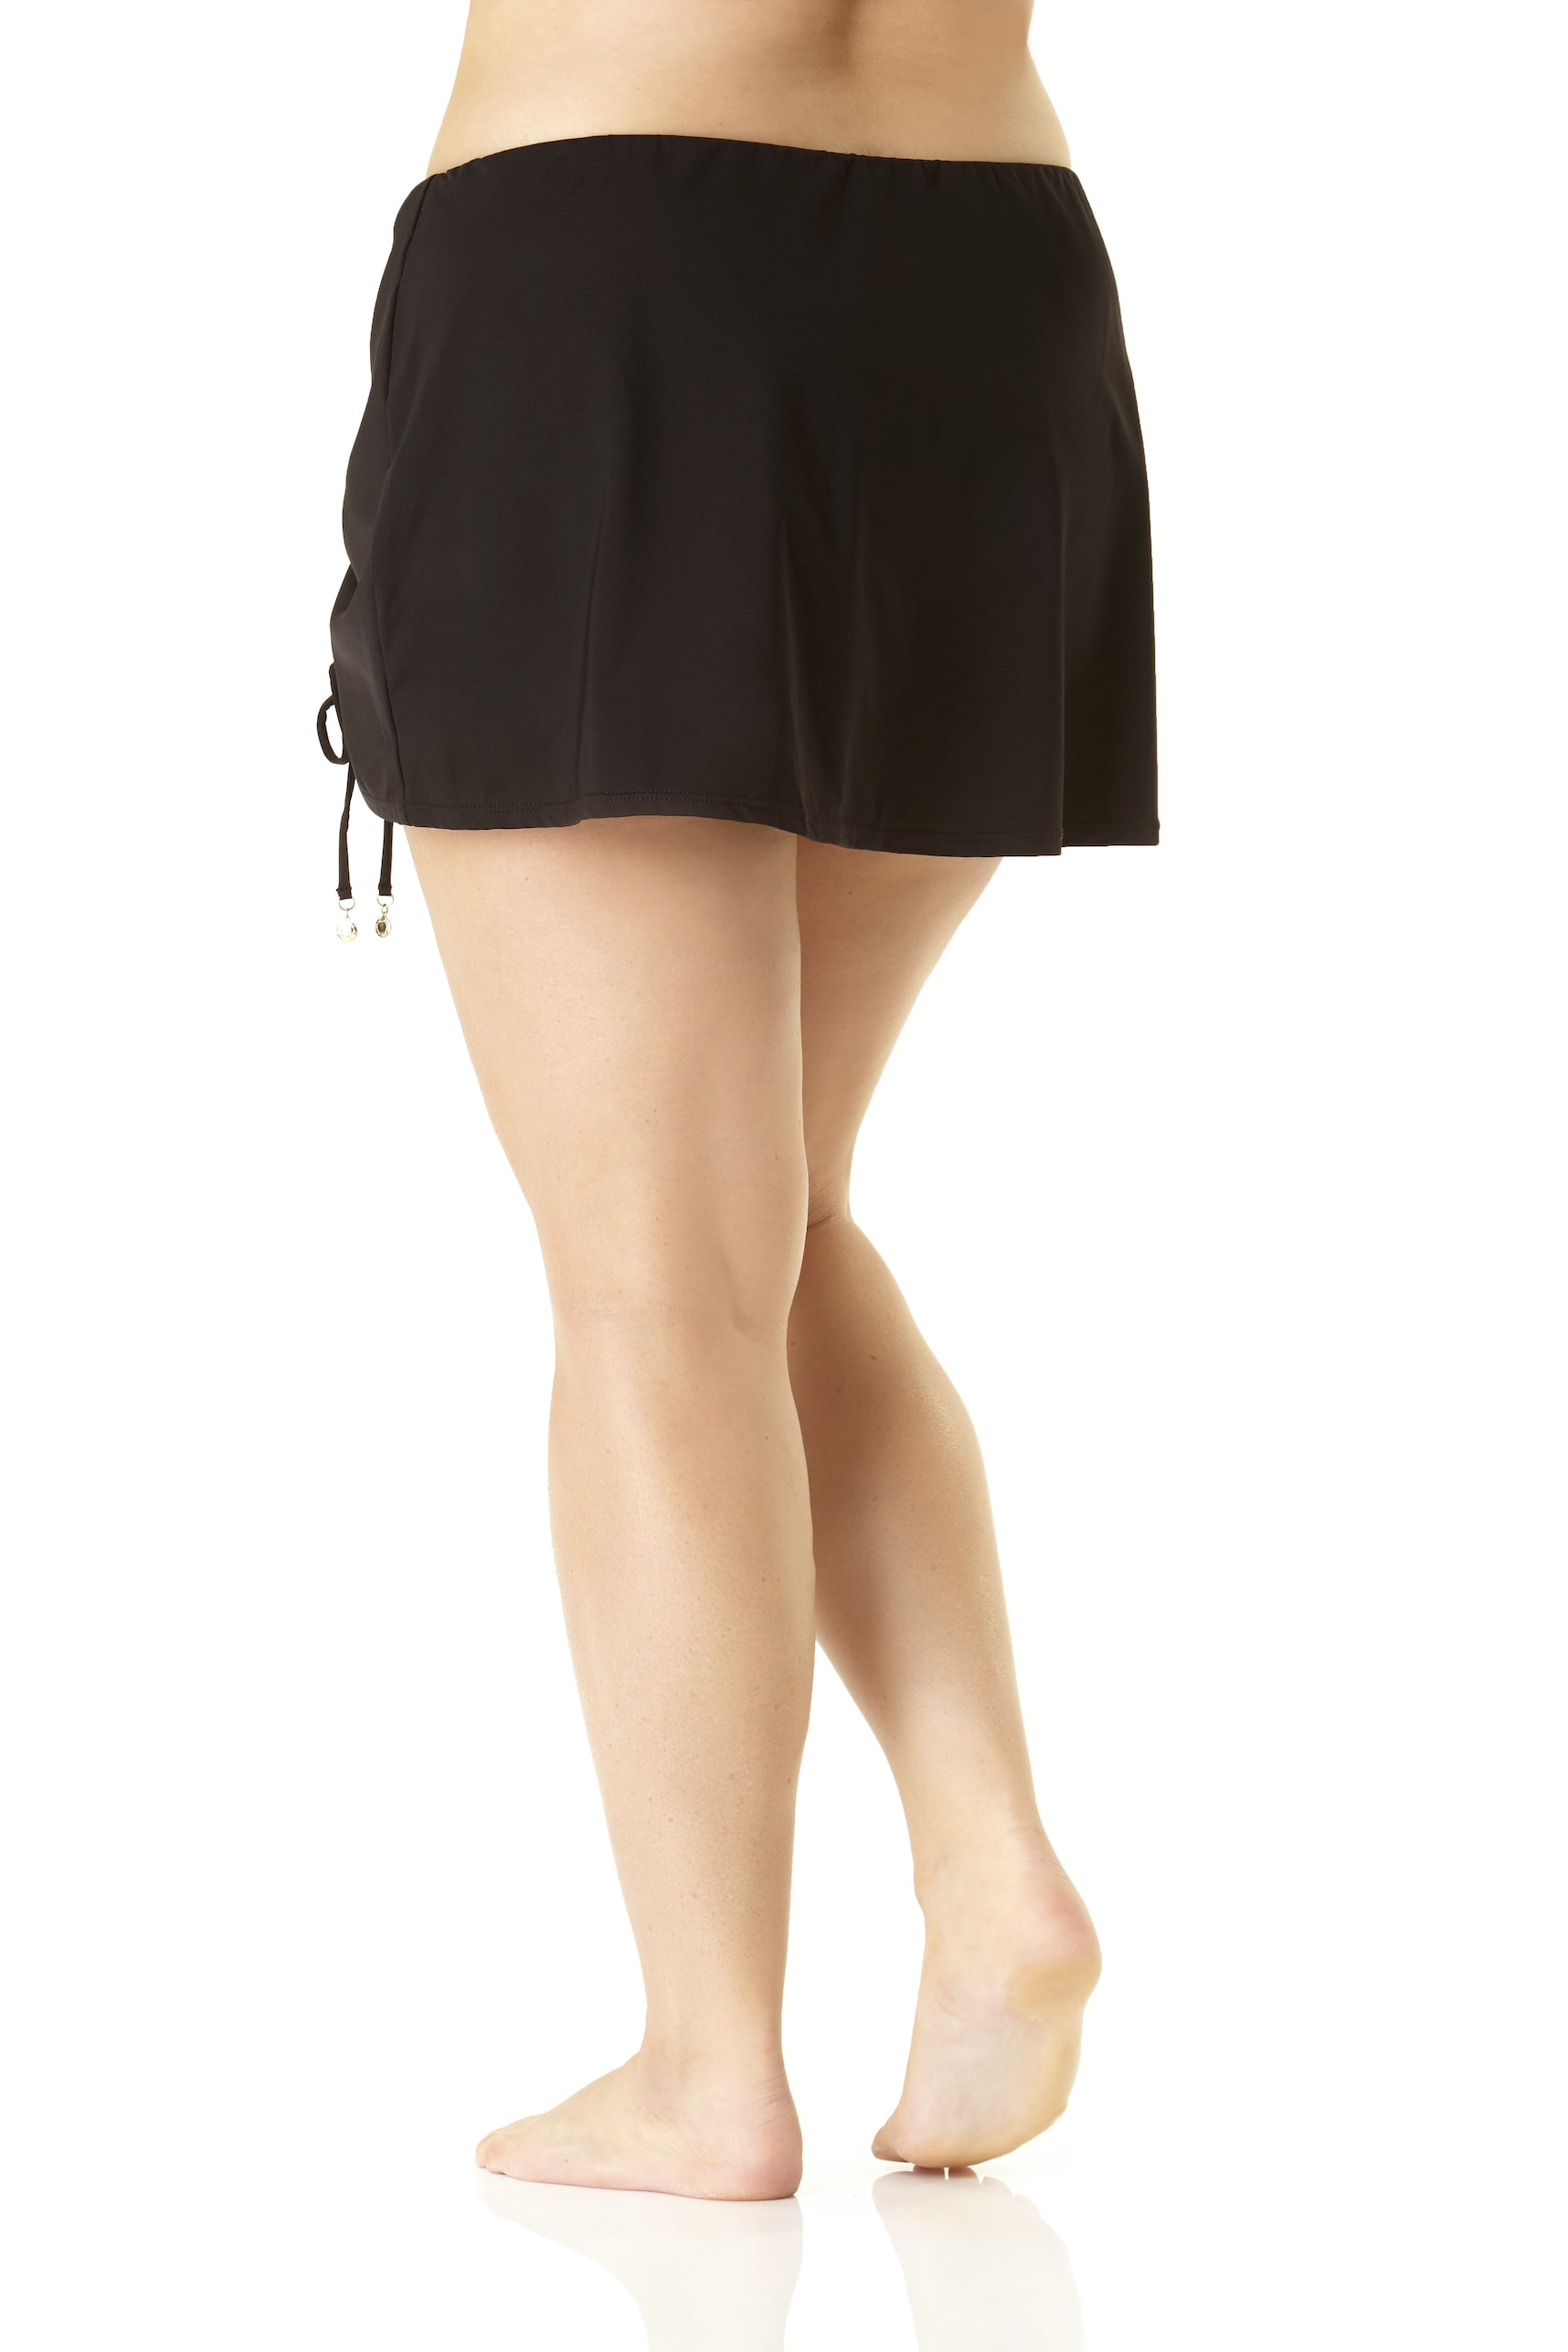 Anne Cole® Live in Color Sarong Swimsuit Skirt Bottom - Plus - Black - Front